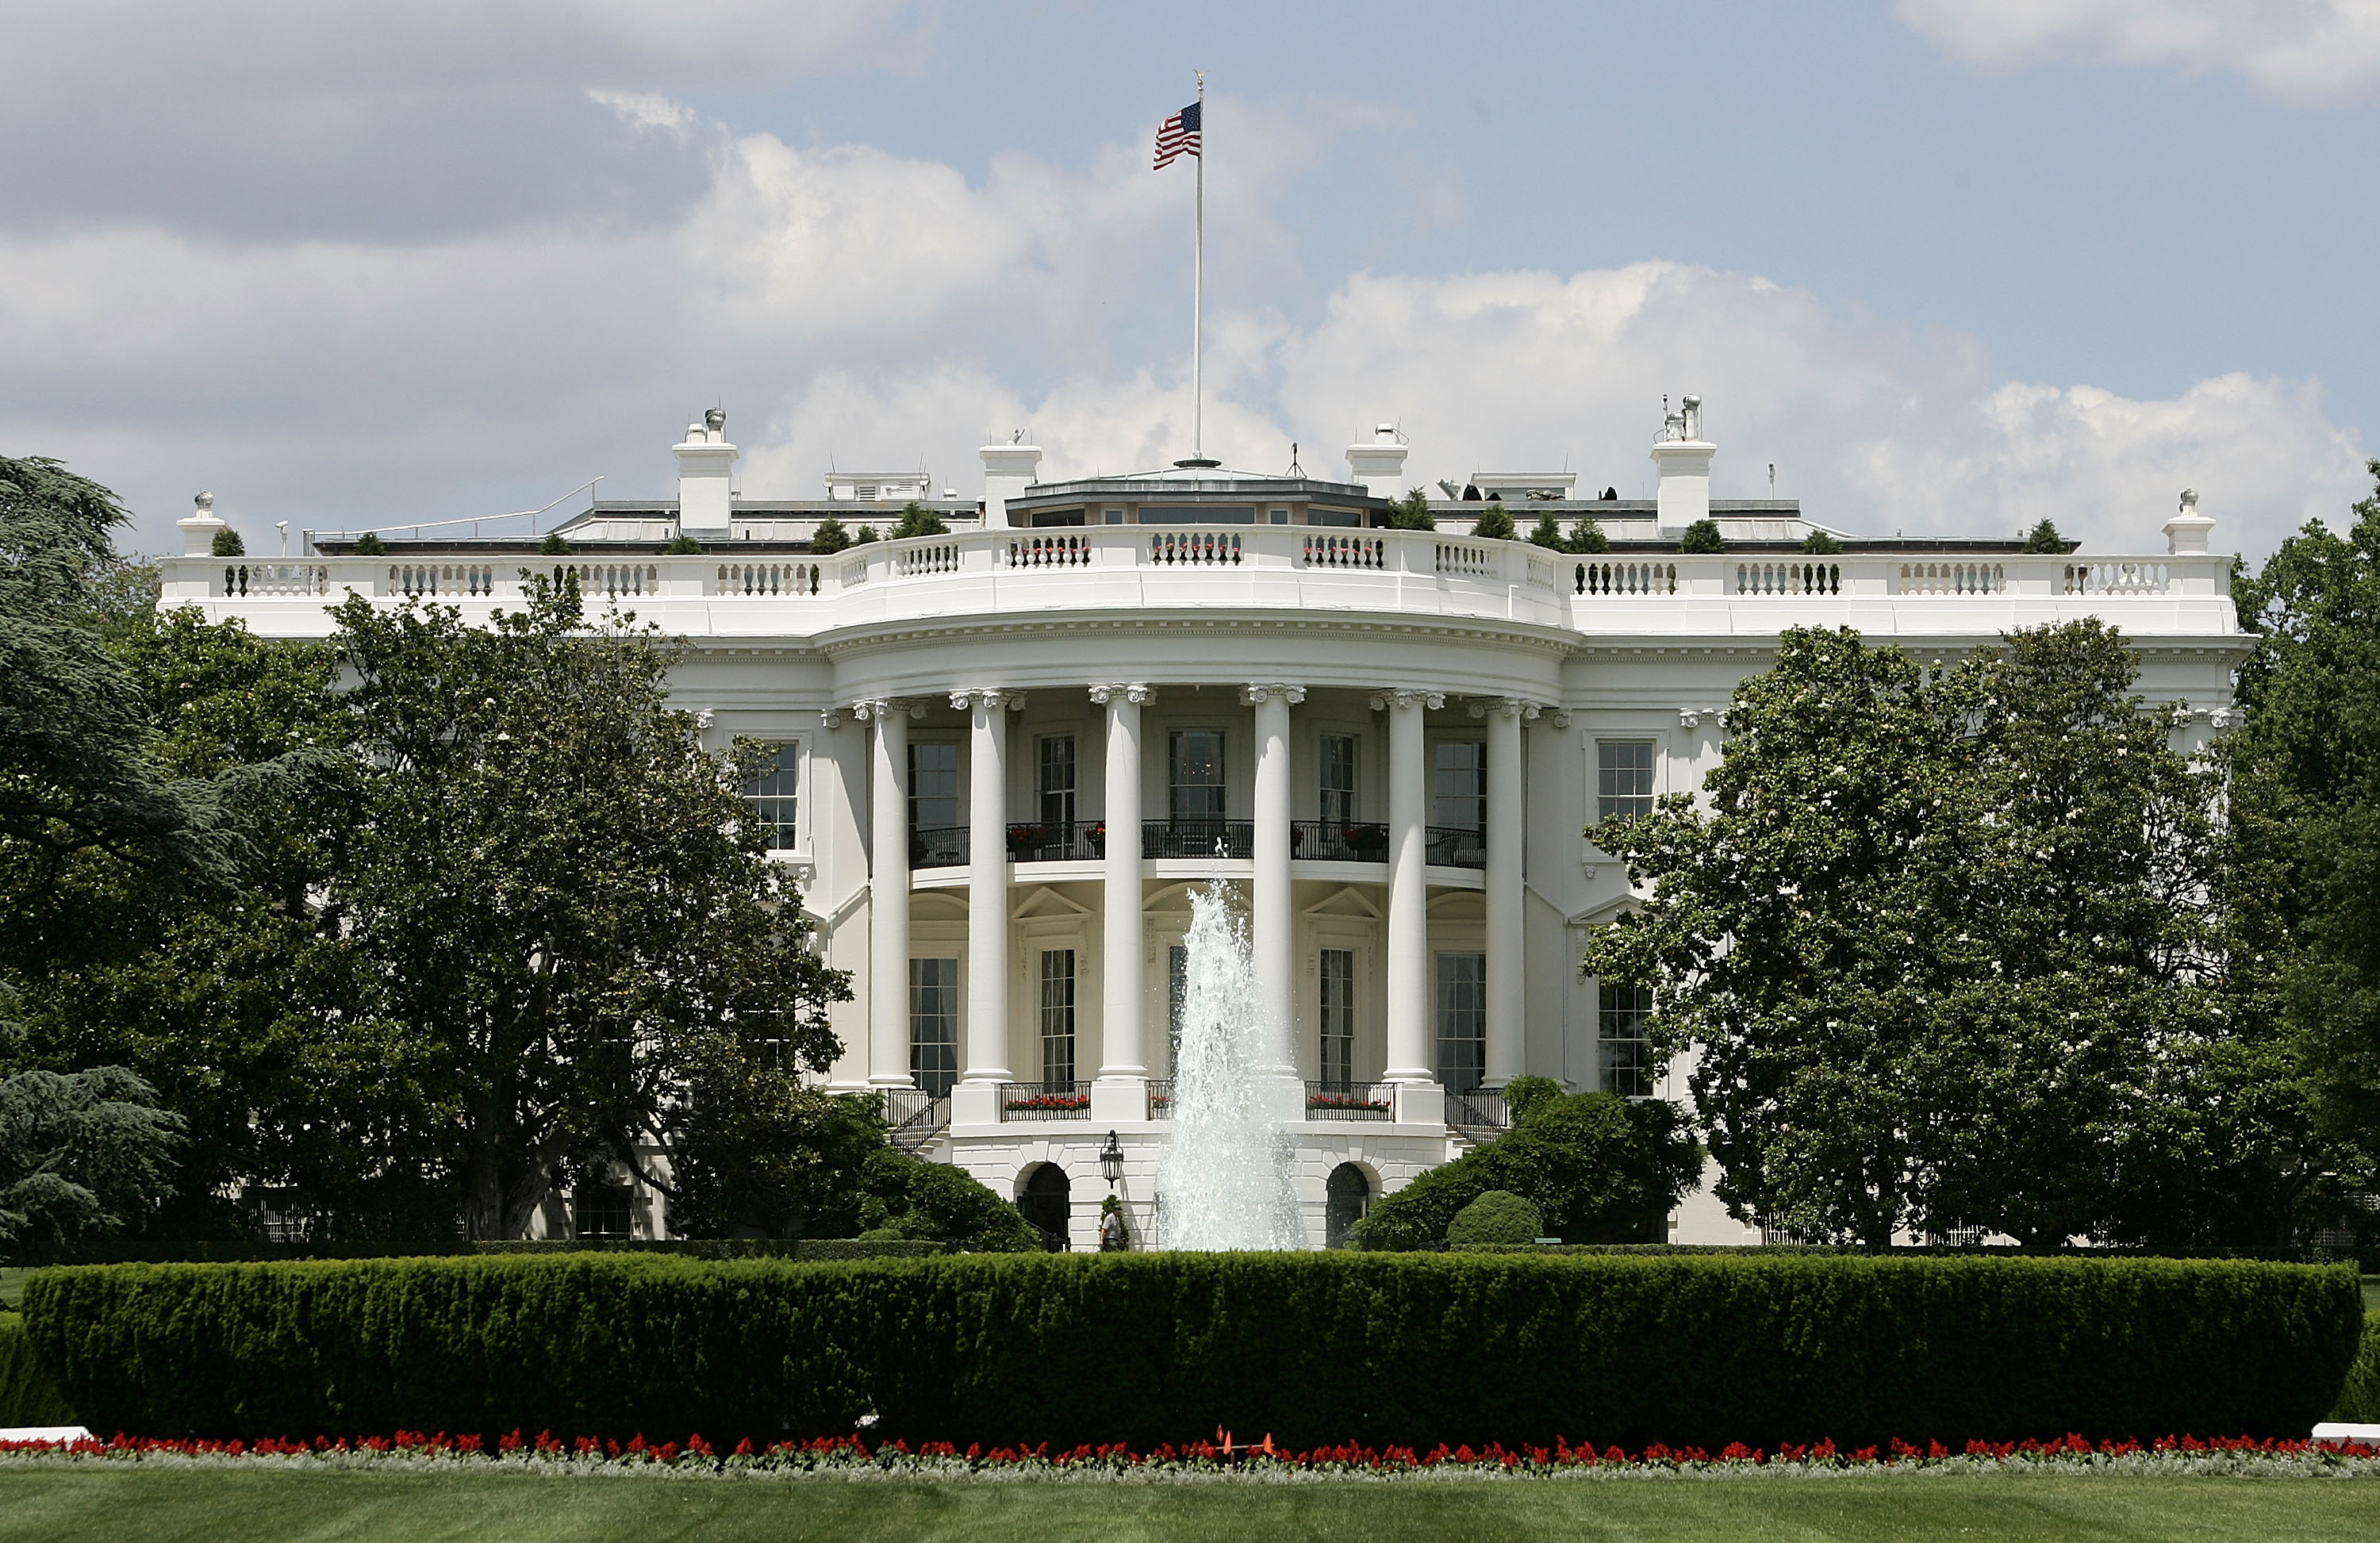 White House on lockdown after reported shooting